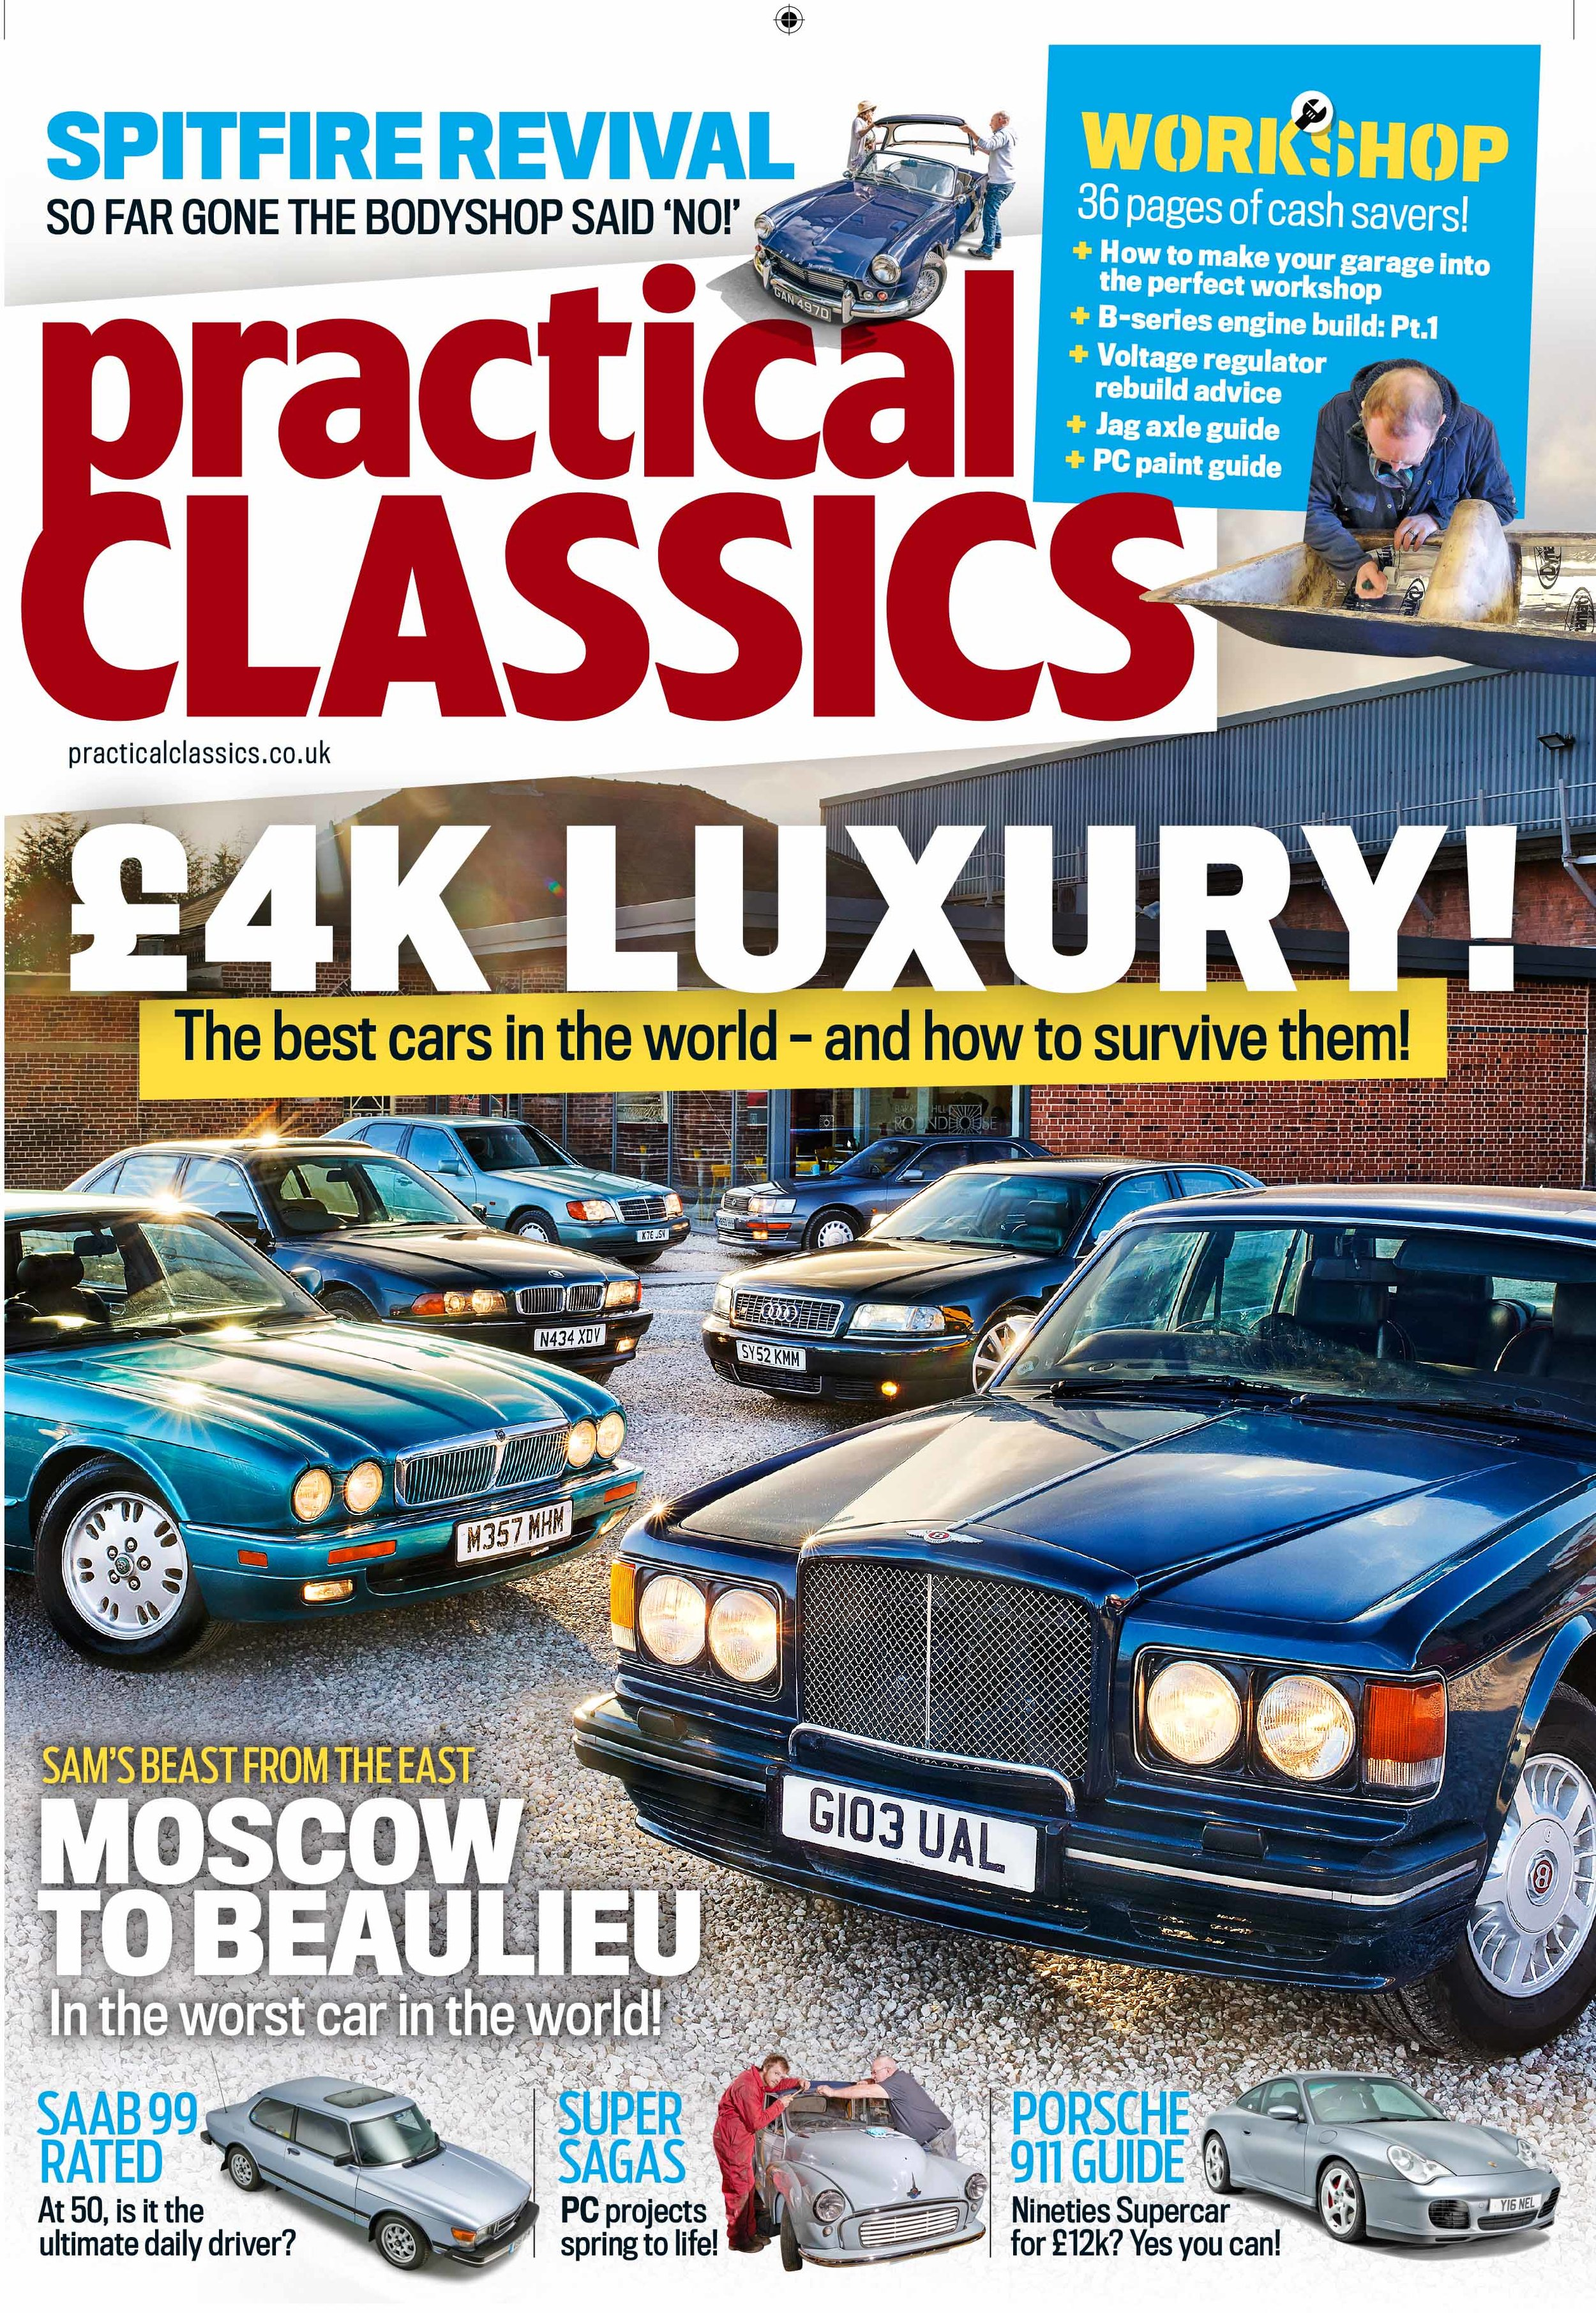 01 FRONT COVER.jpg